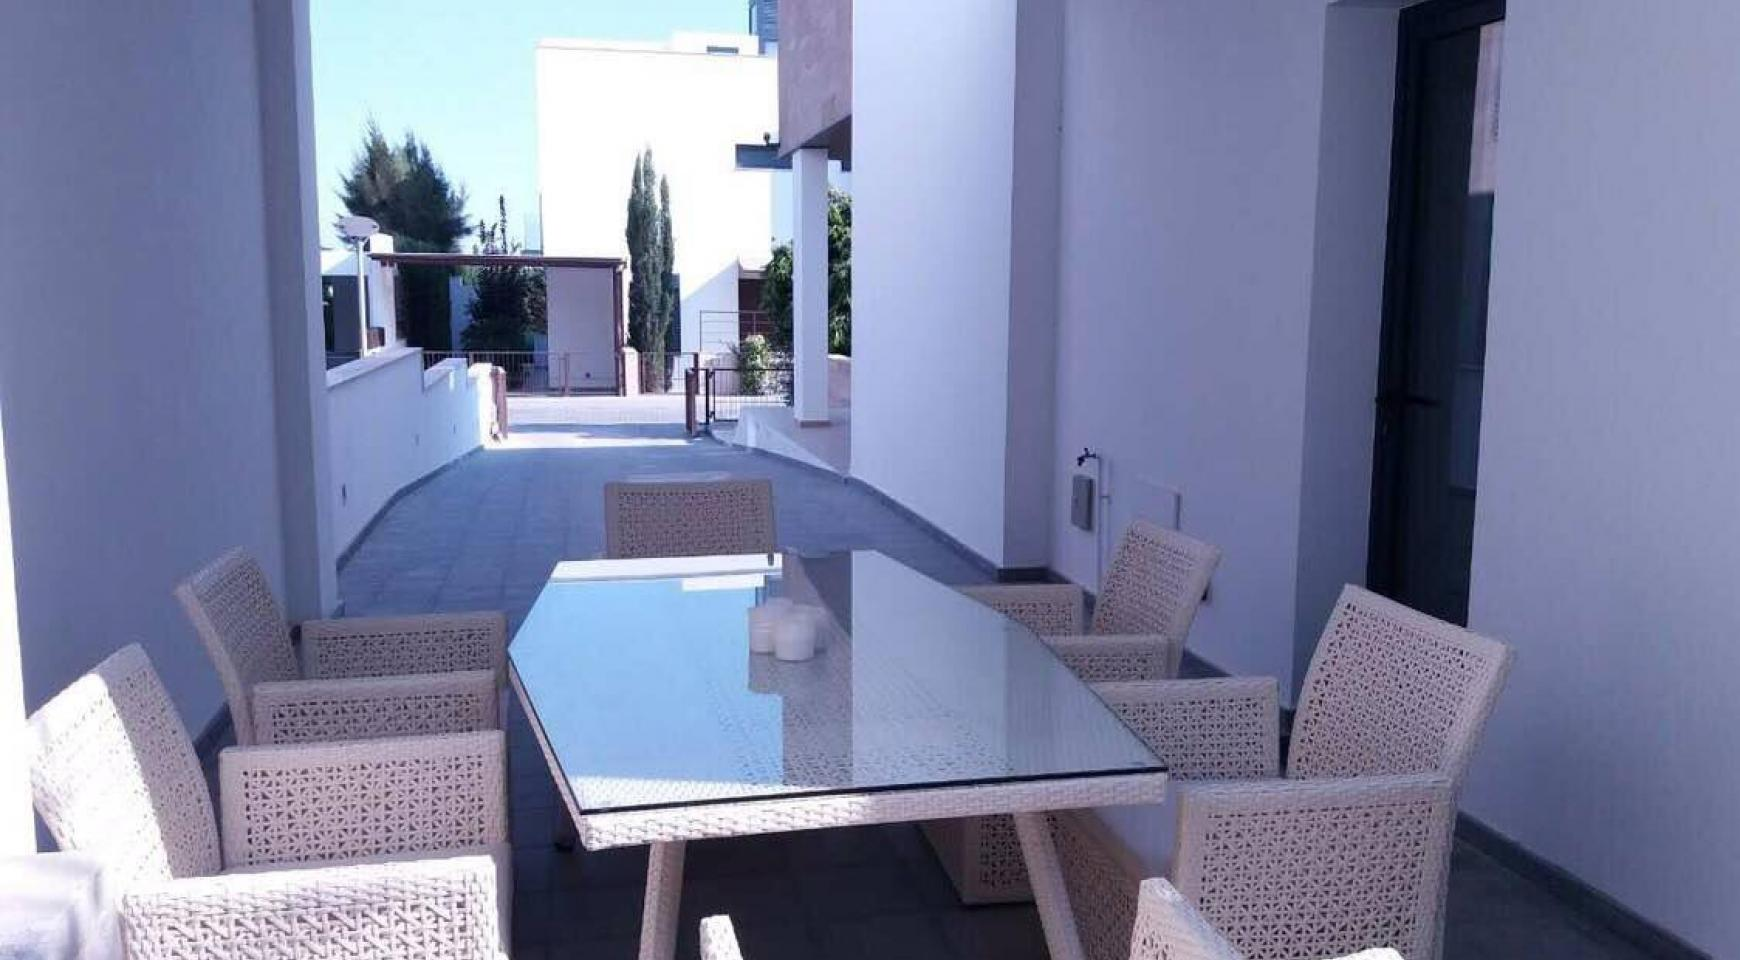 New Luxurious 3 Bedroom Villa  within a Gated Project near the Sea - 6